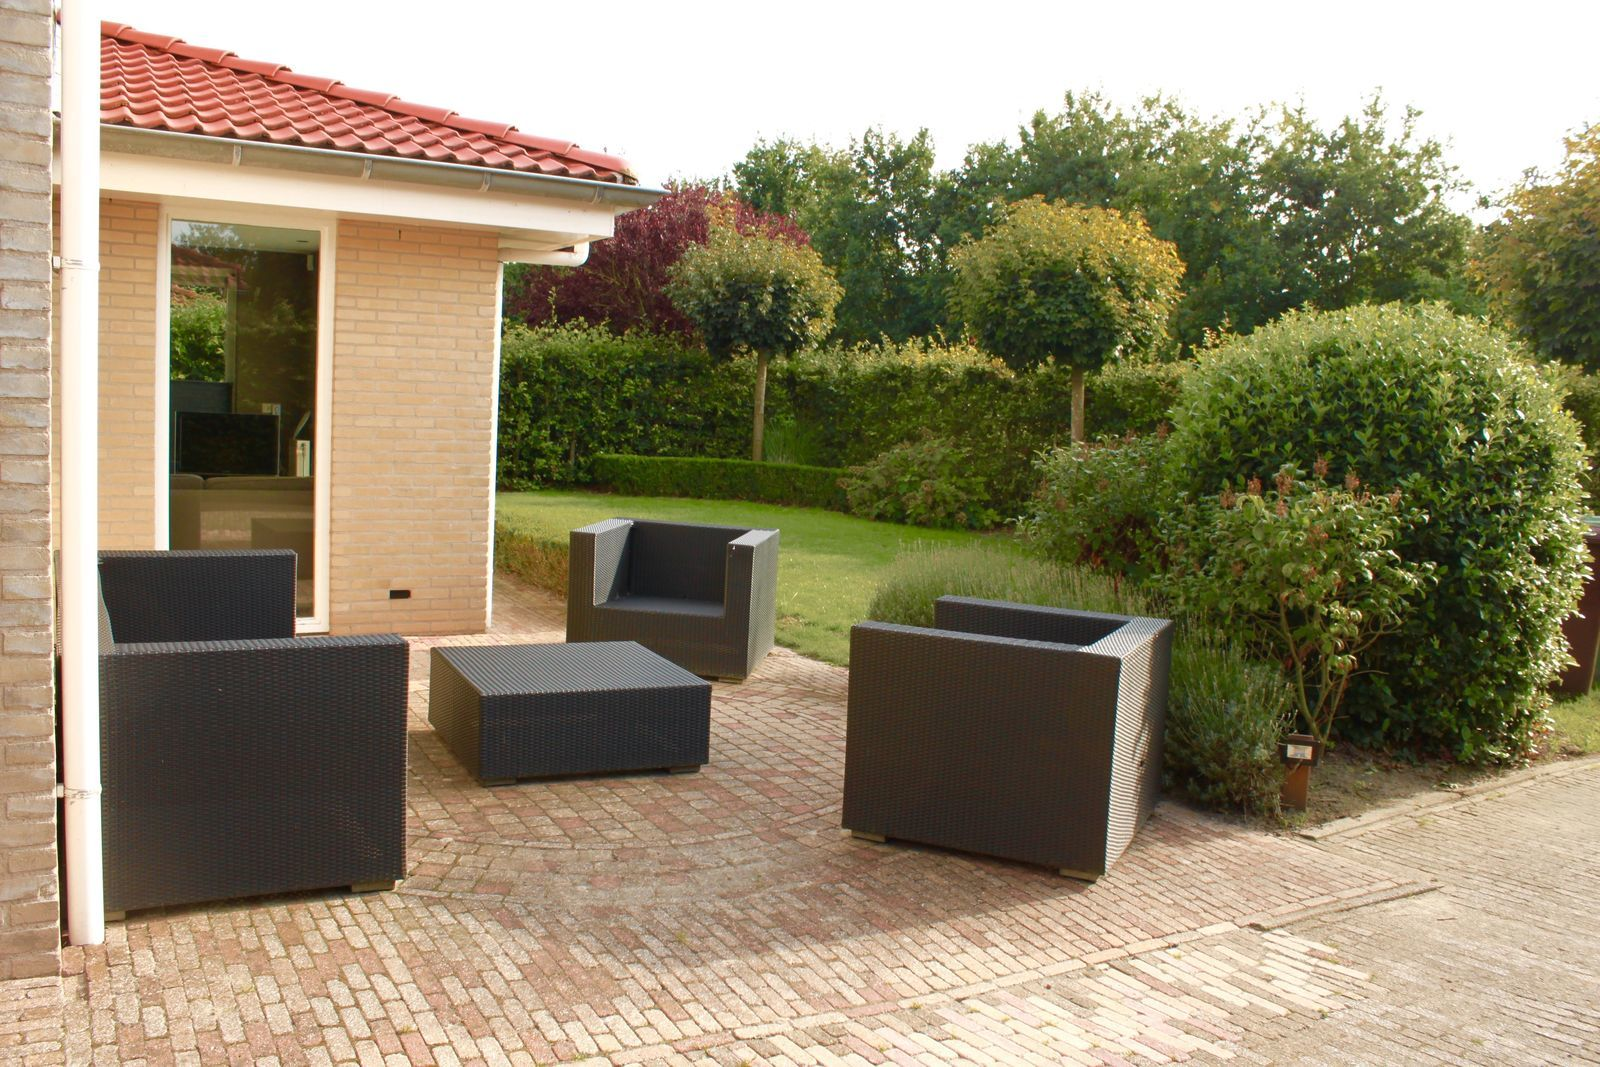 Vacation home Oude Nieuwlandseweg 4D (6 persons) - Ouddorp